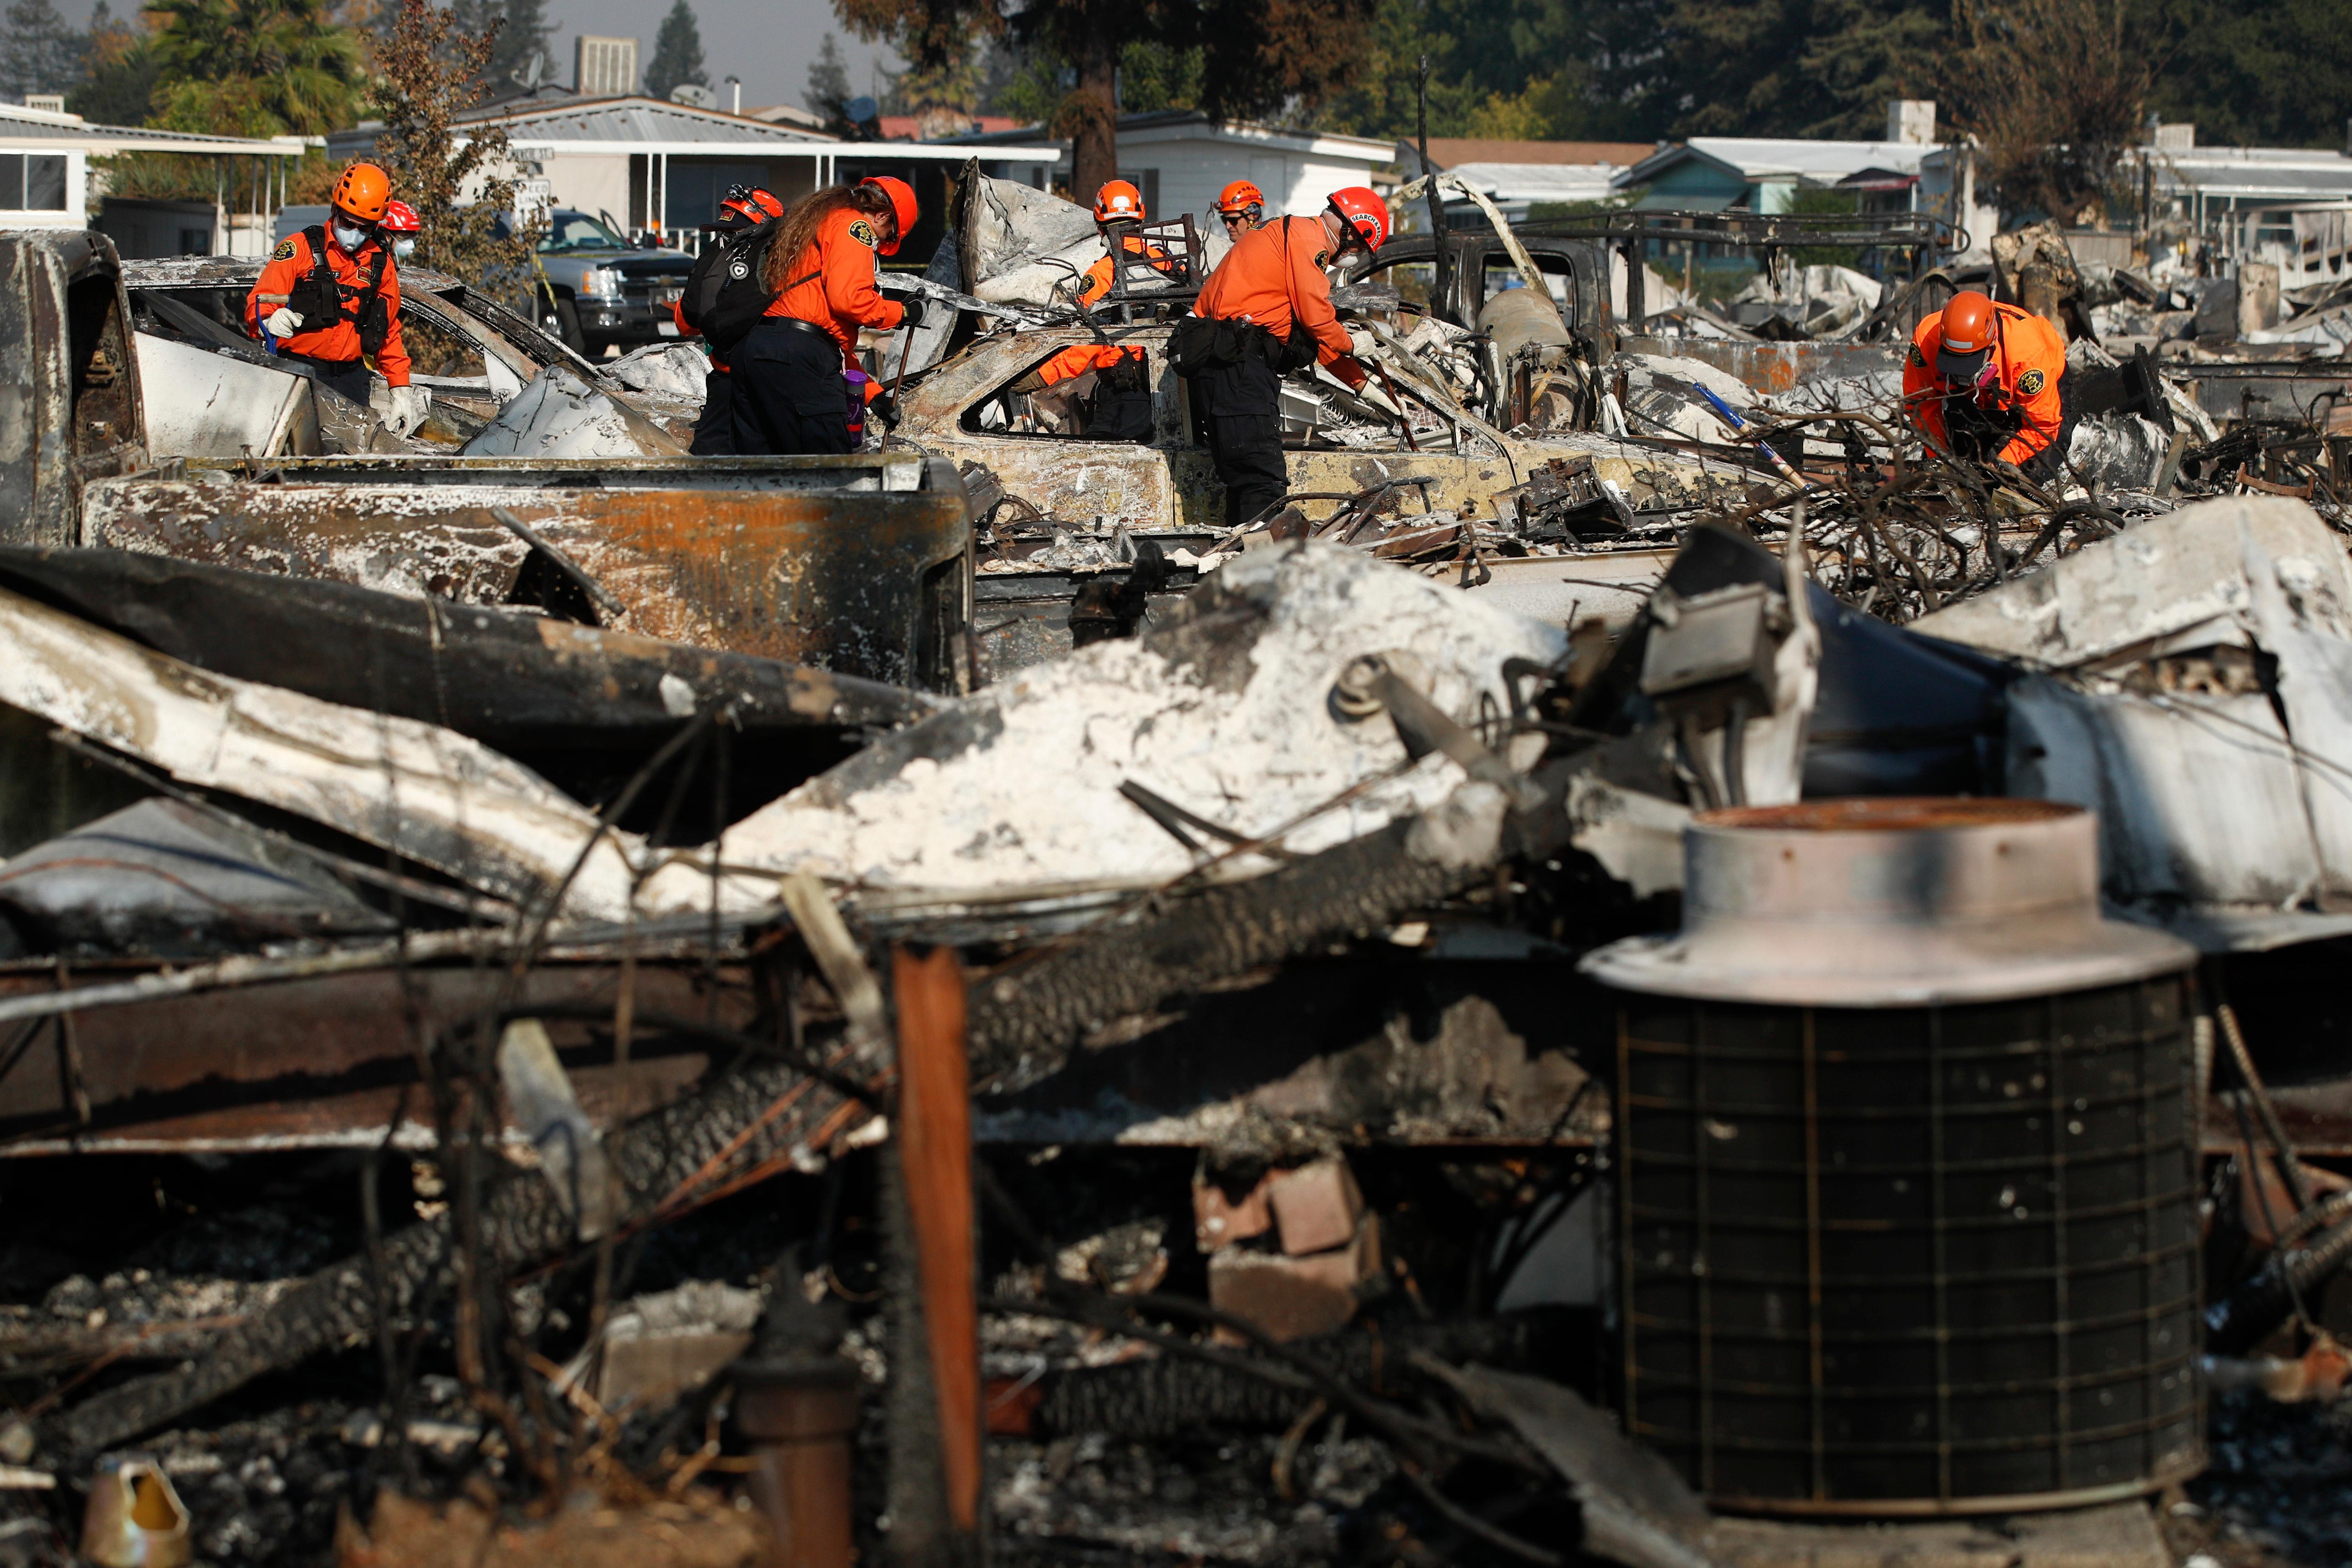 Members of a search and rescue team search through the rubble of mobile homes destroyed by a wildfire Monday, Oct. 16, 2017, in Santa Rosa, Calif. With the winds dying down, fire crews gained ground as they battled wildfires that have devastated California wine country and other parts of the state over the past week, and thousands of people got the all-clear to return home. (AP Photo/Jae C. Hong)